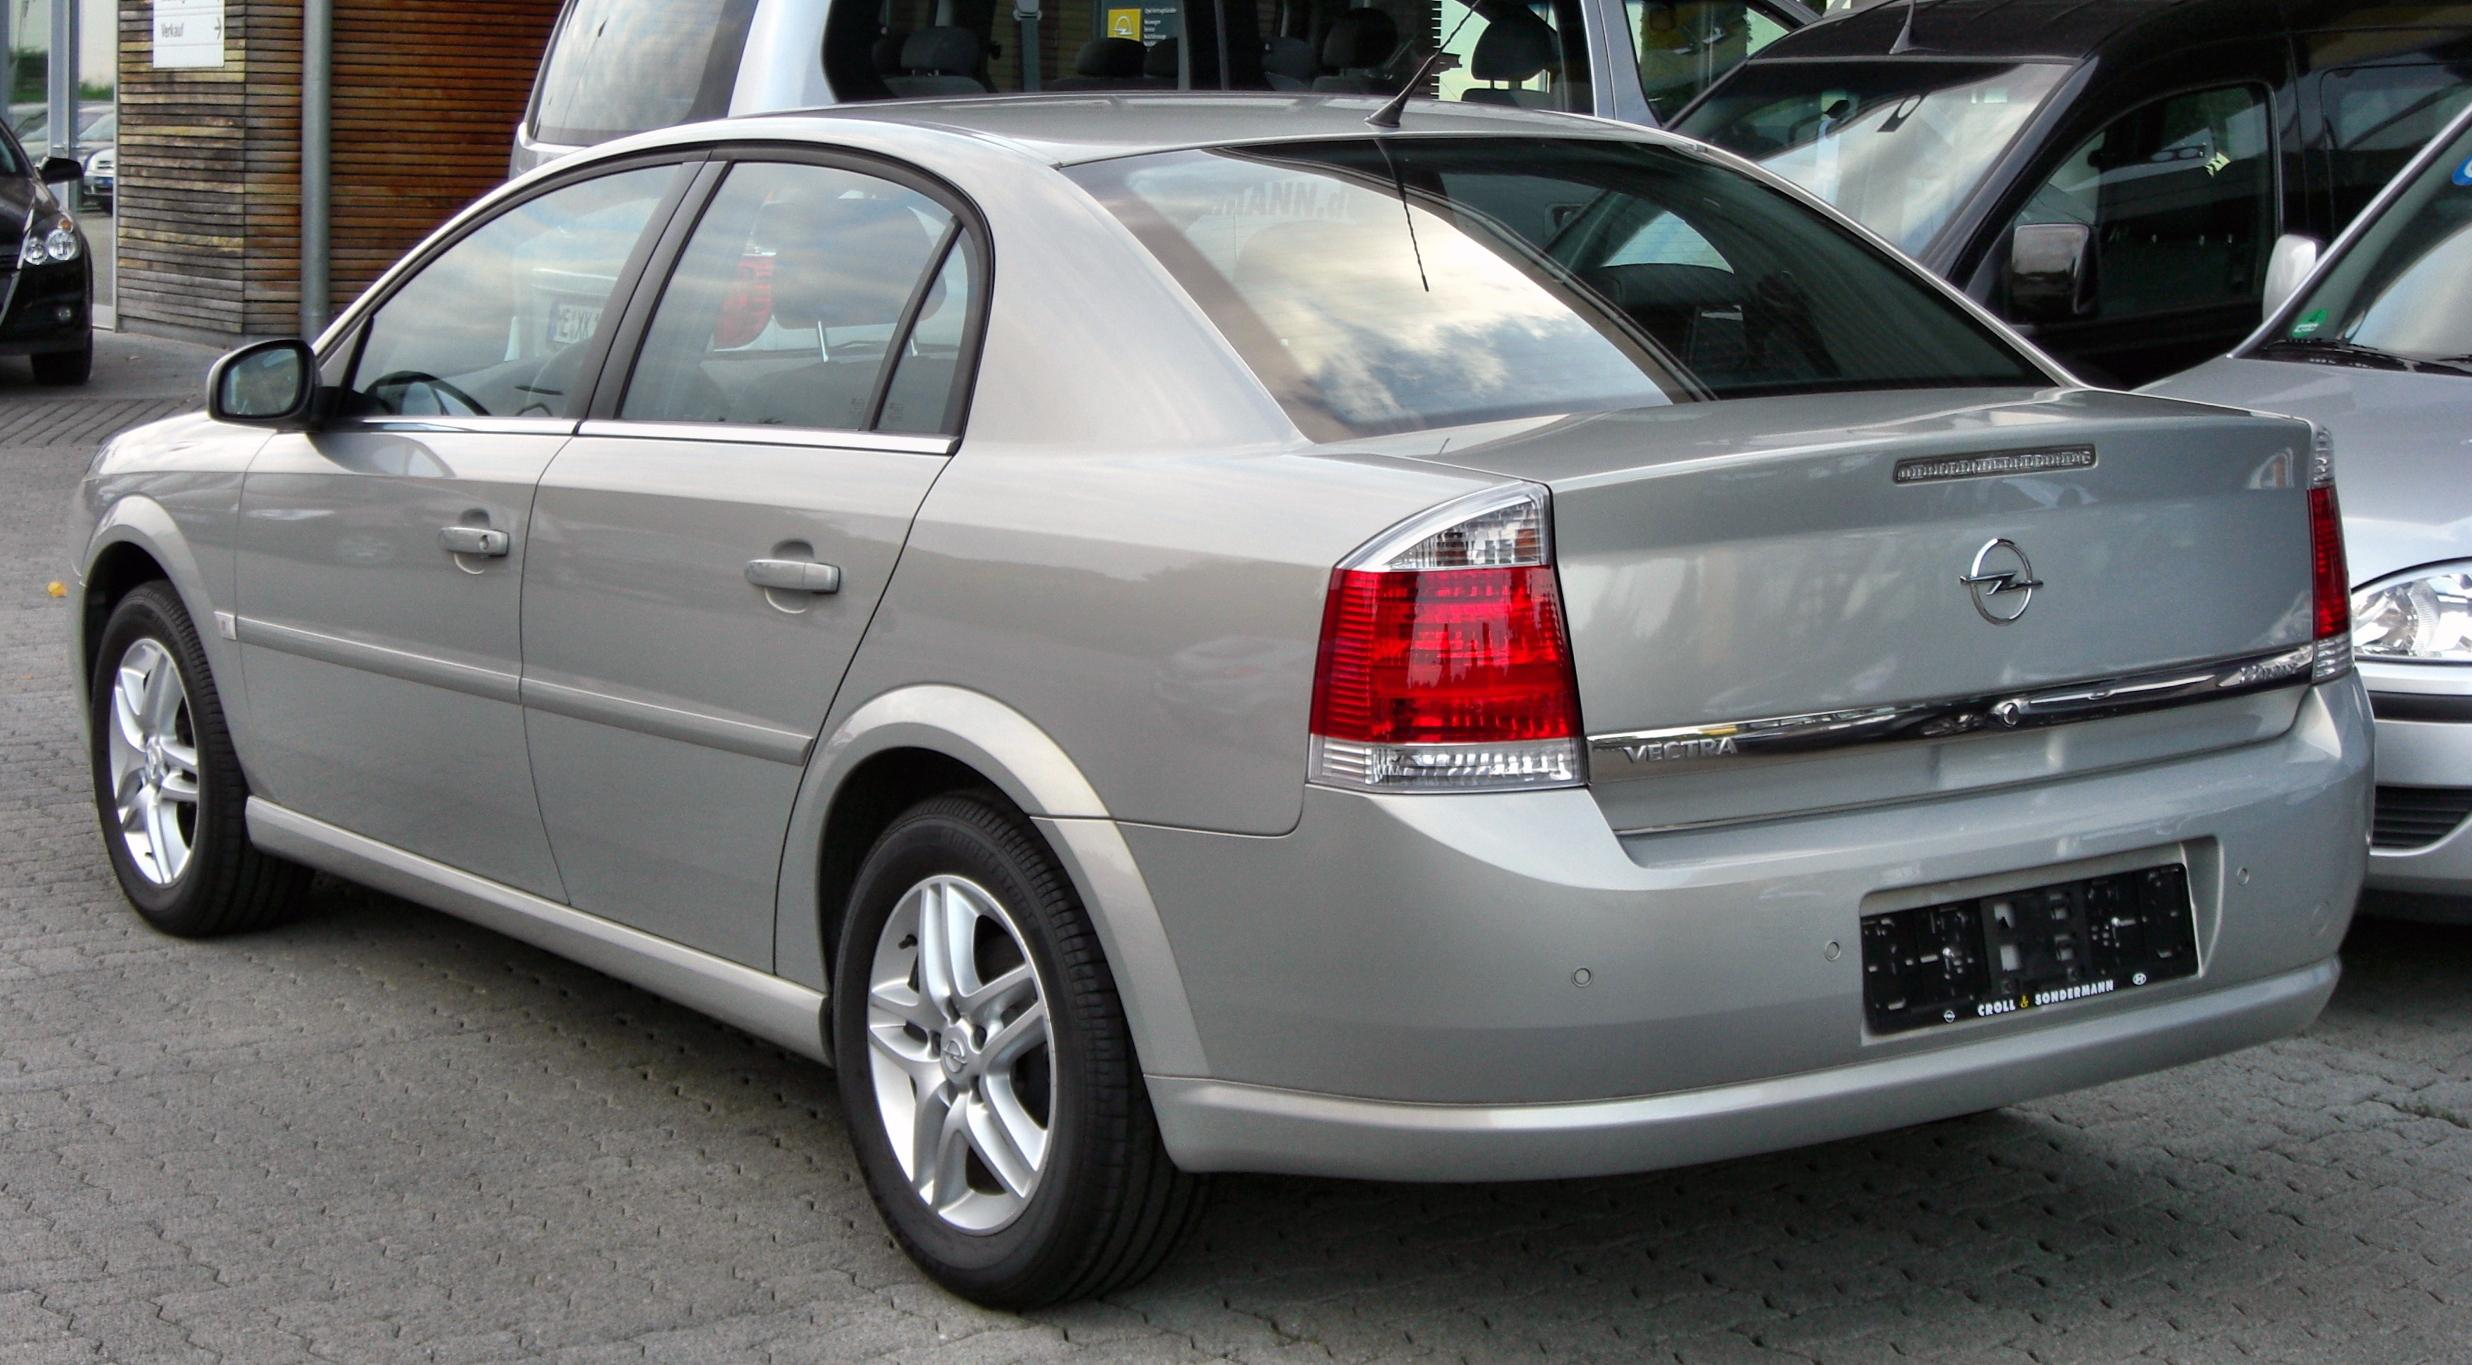 holden vectra (b) 2006 images #6